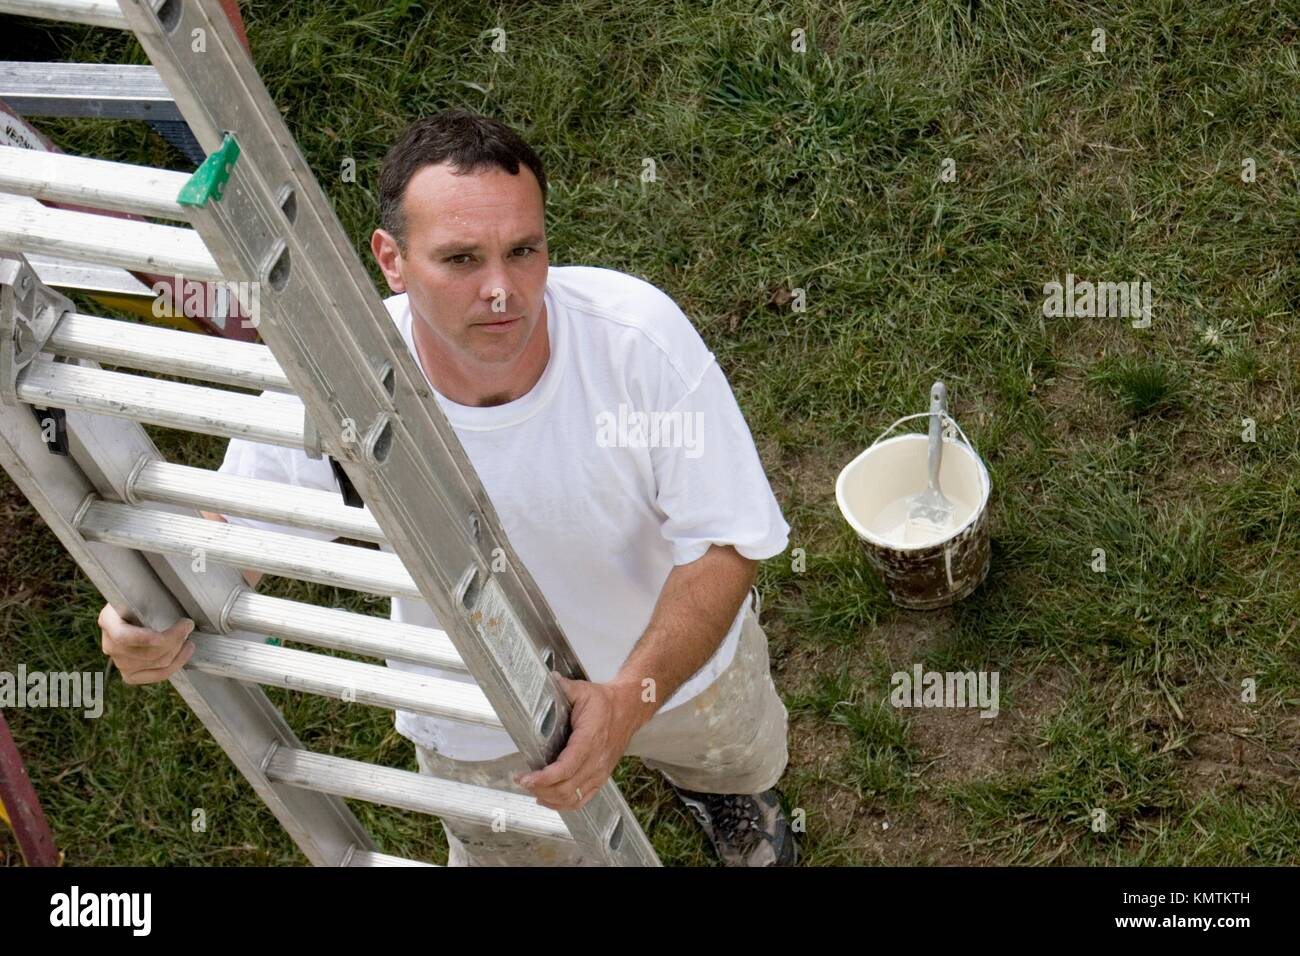 Painter moving a ladder - Stock Image